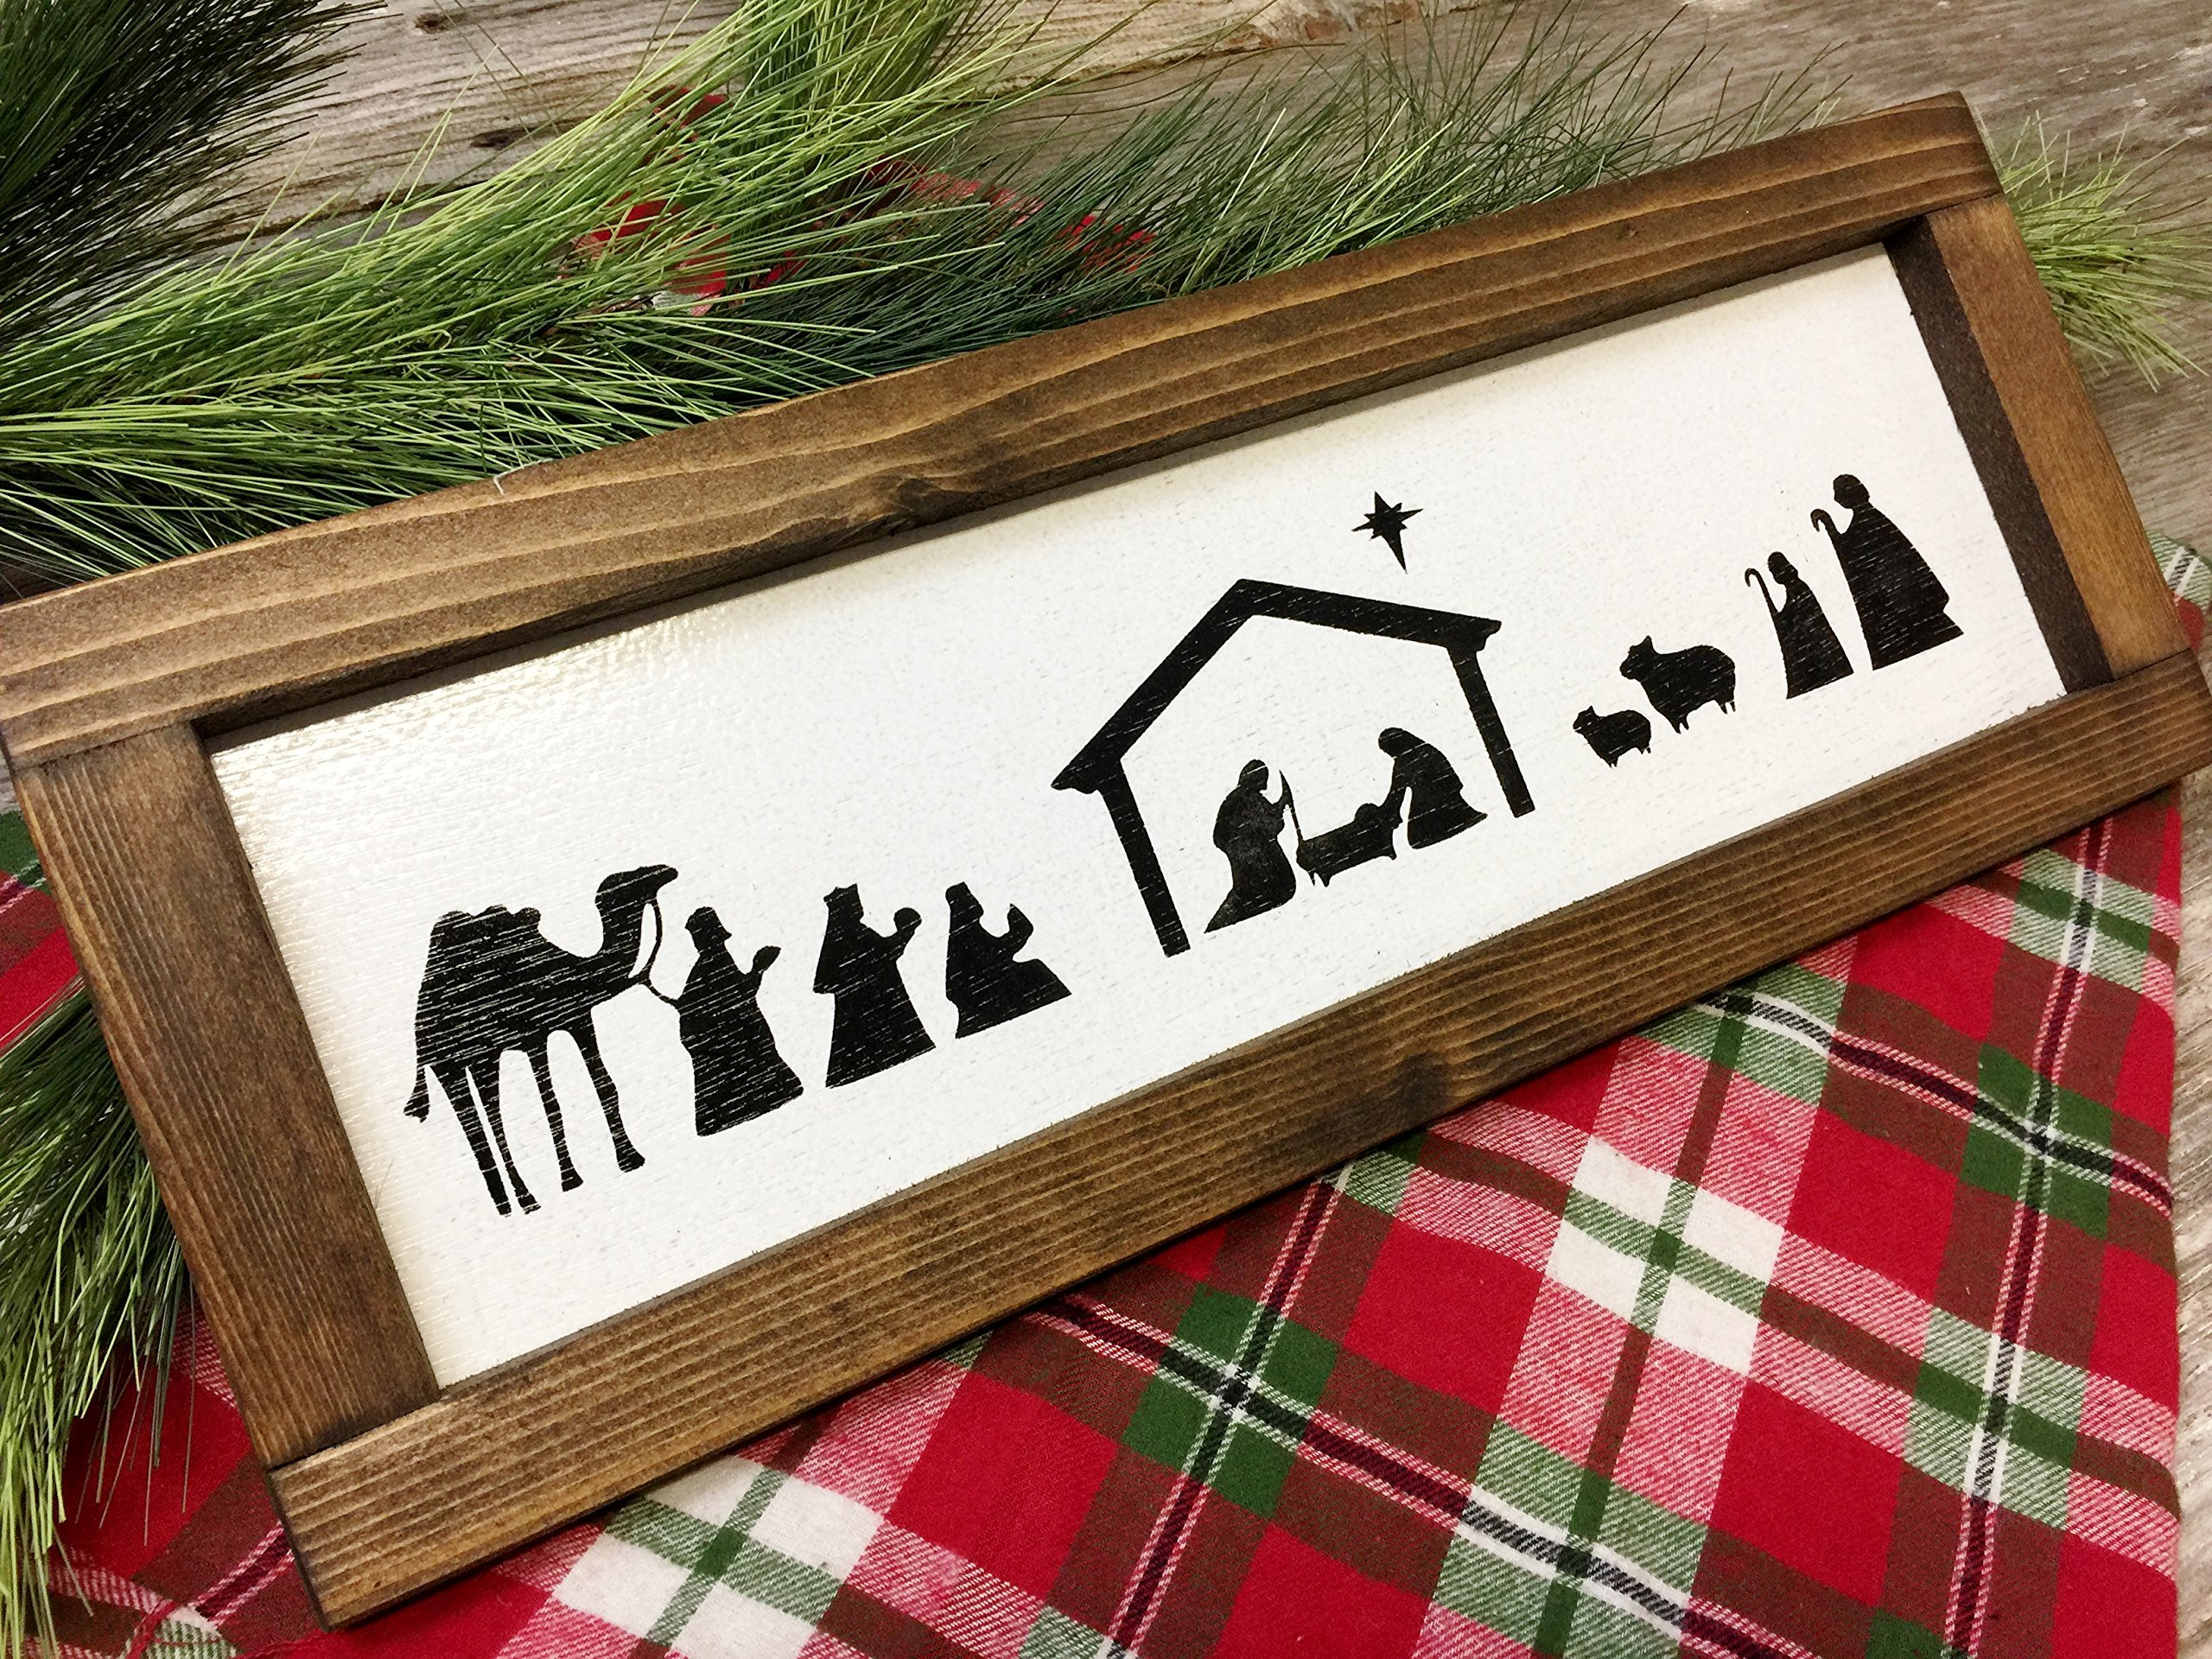 Nativity Scene Farmhouse Christmas Decor wood Sign - Manger Scene - Rustic Christmas Decor - Hand Painted Framed Sign